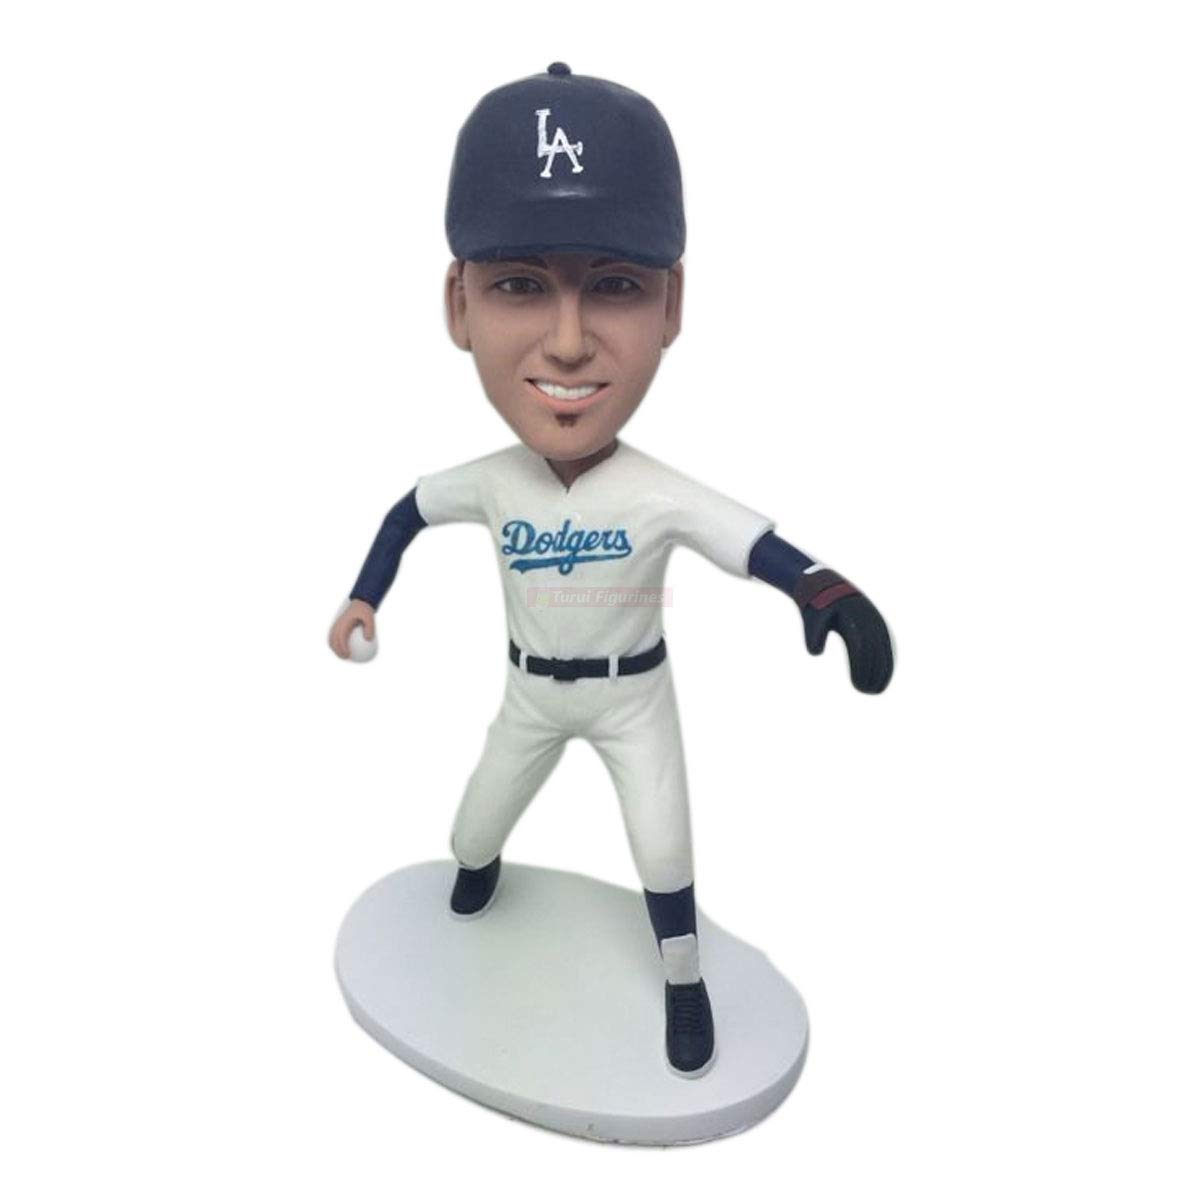 LA Dodgers Fan Custom Bobble Head Personalized Clay Figurines Based on Customers Photo Fathers Day Gift Husband Boyfriend Son Bday Gift